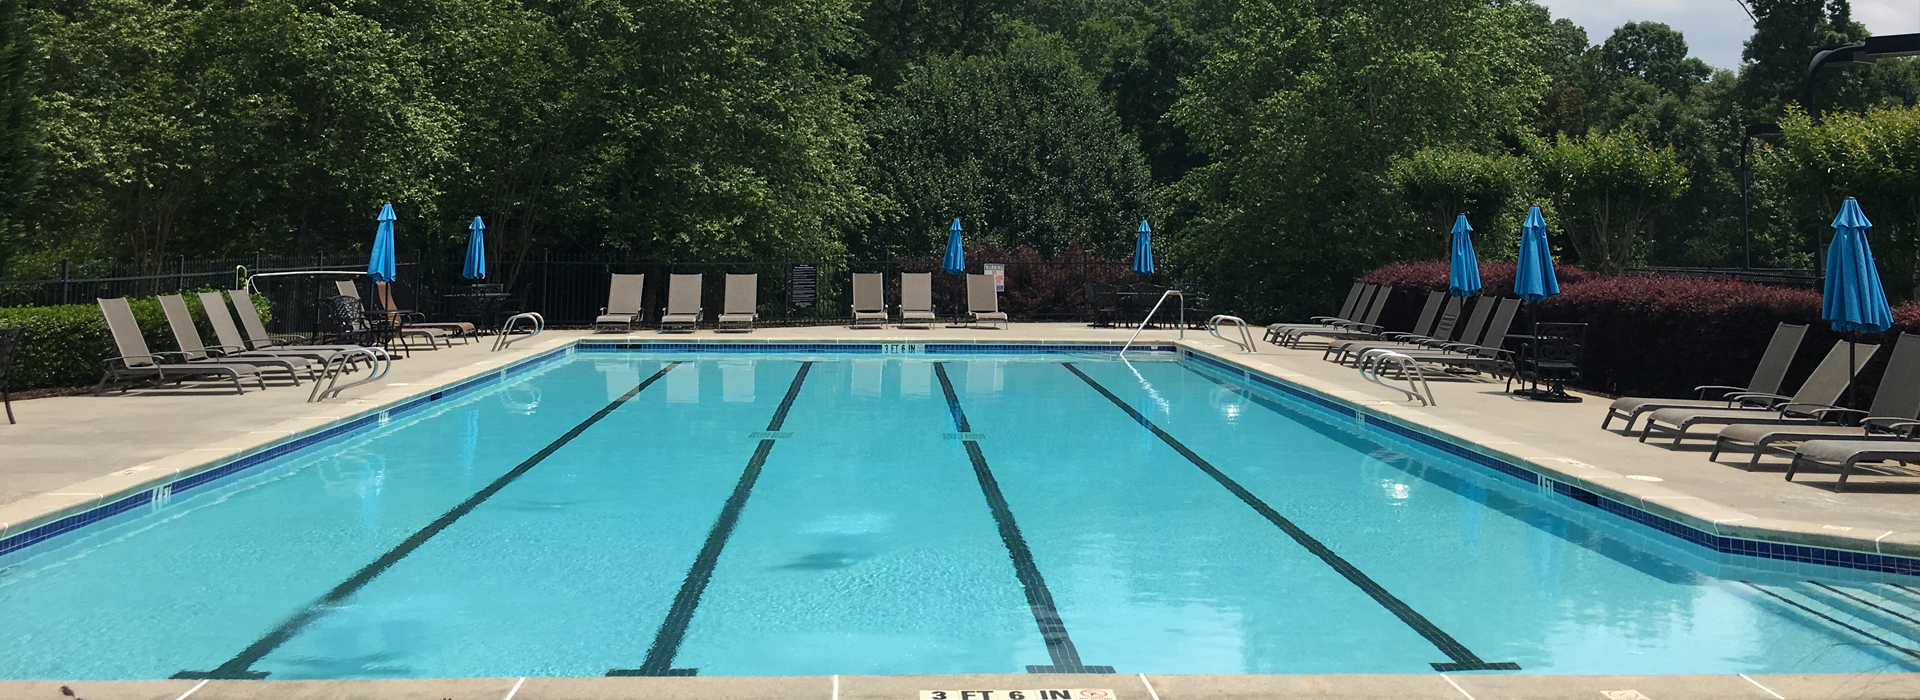 Reliable Pool Management